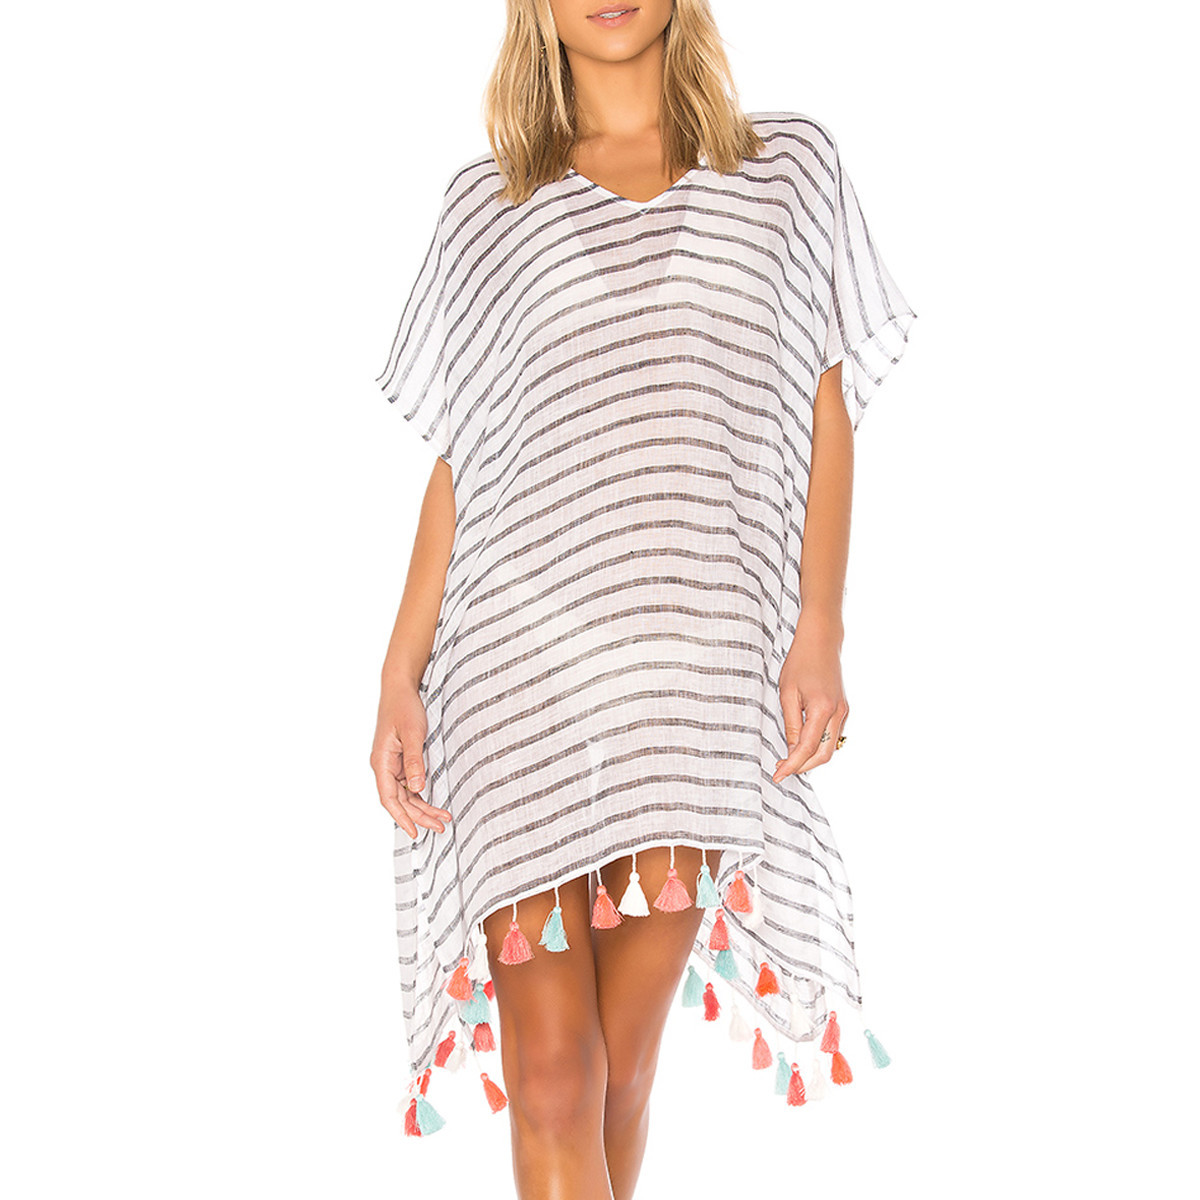 2de27f7607c Best Beach Cover Ups to Buy For Your Next Vacation